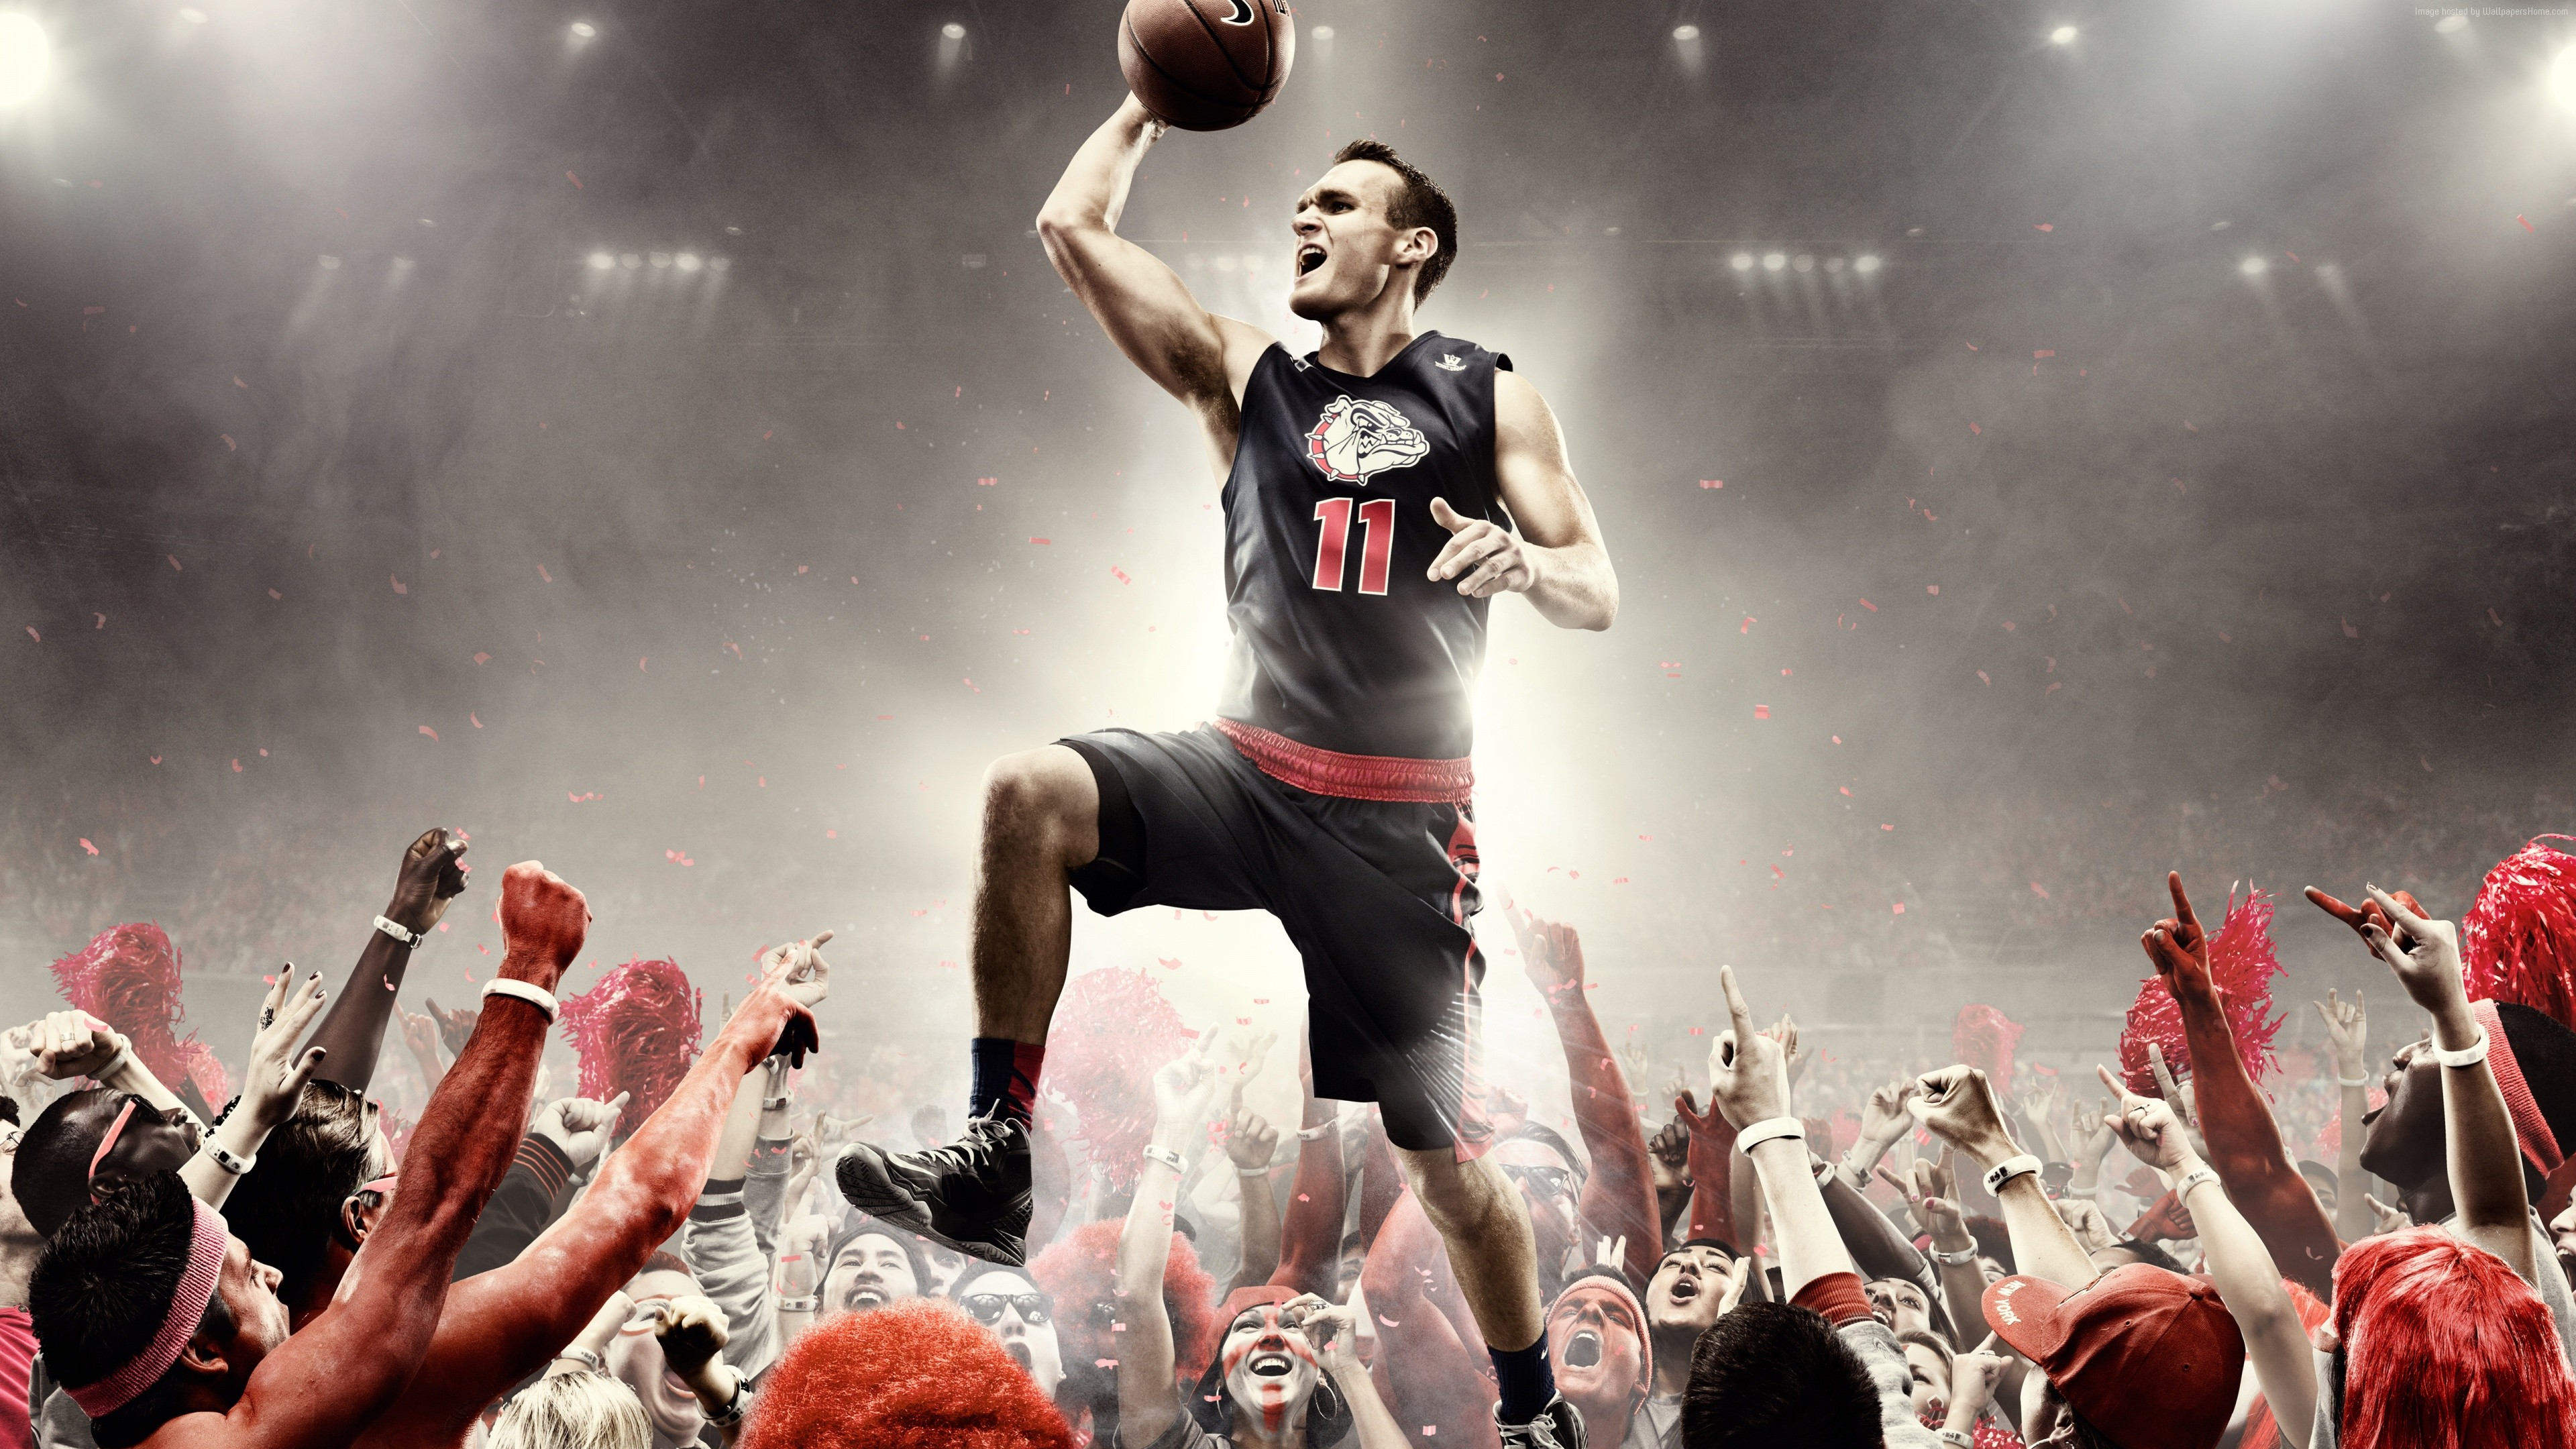 Wallpaper nike, basketball, bounce, point, Sport